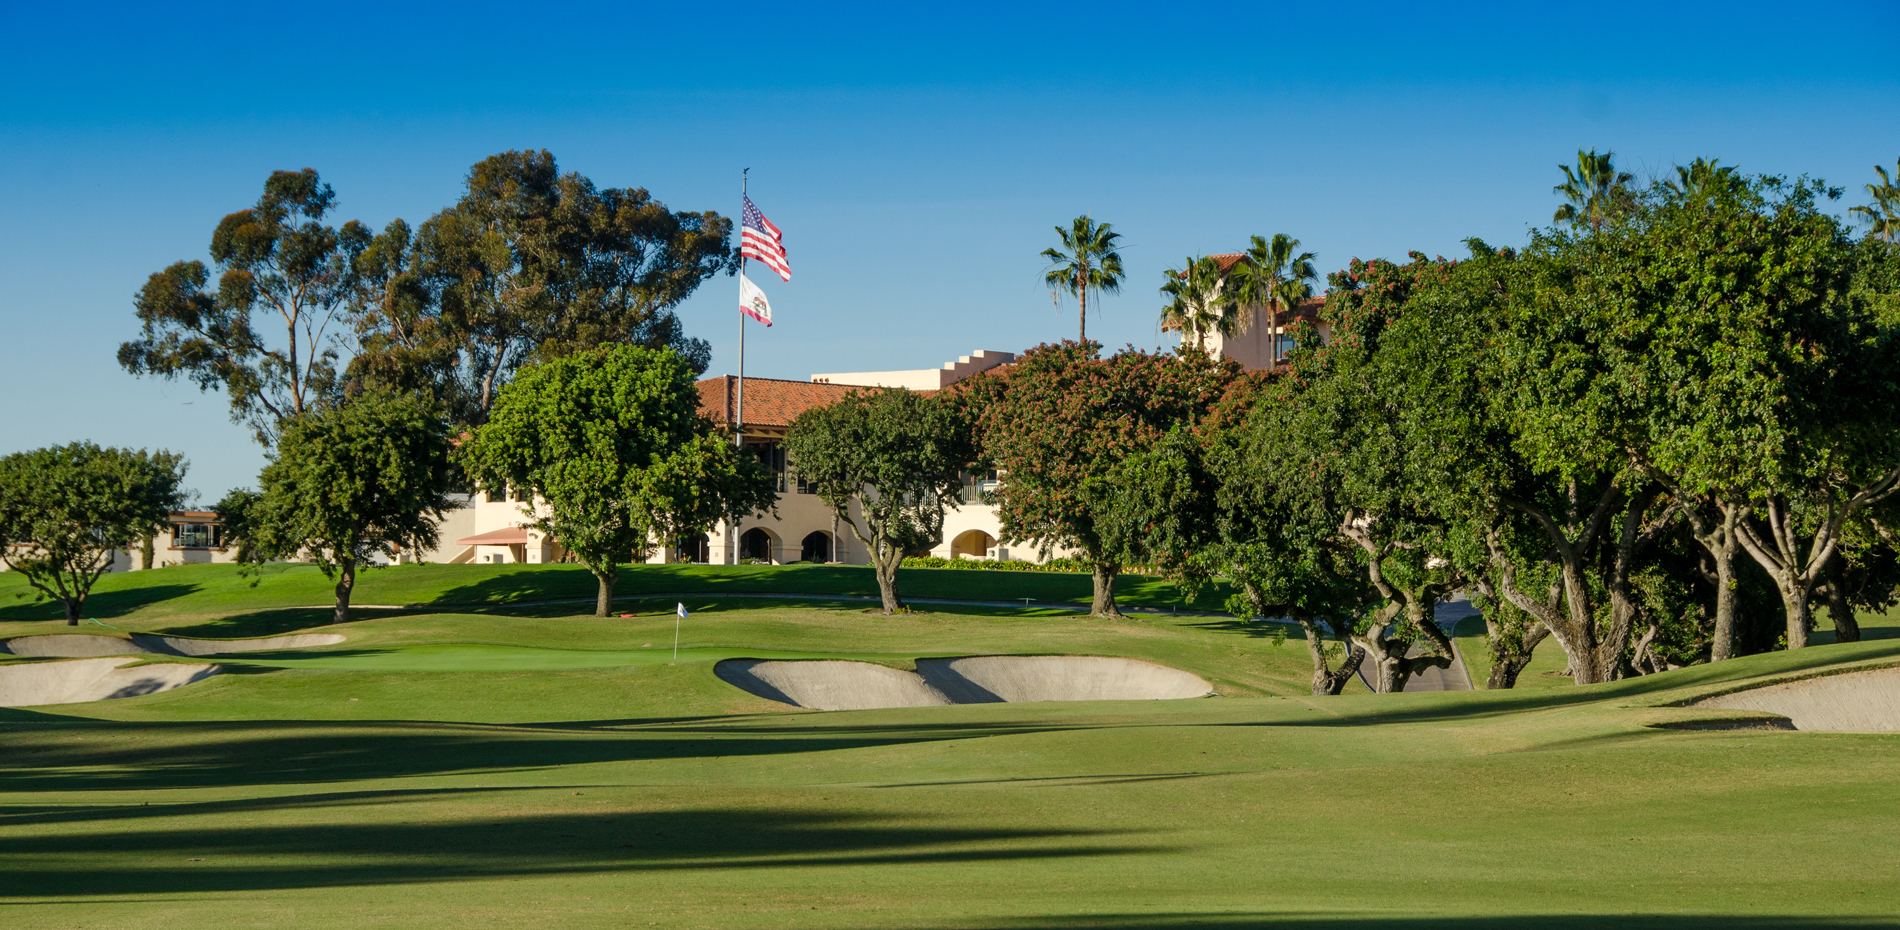 singles golf clubs san diego Singles directory in san francisco offering speed dating, social clubs, dancing, dining, matchmaking, dating advice, singles travel, online personals, dating services.